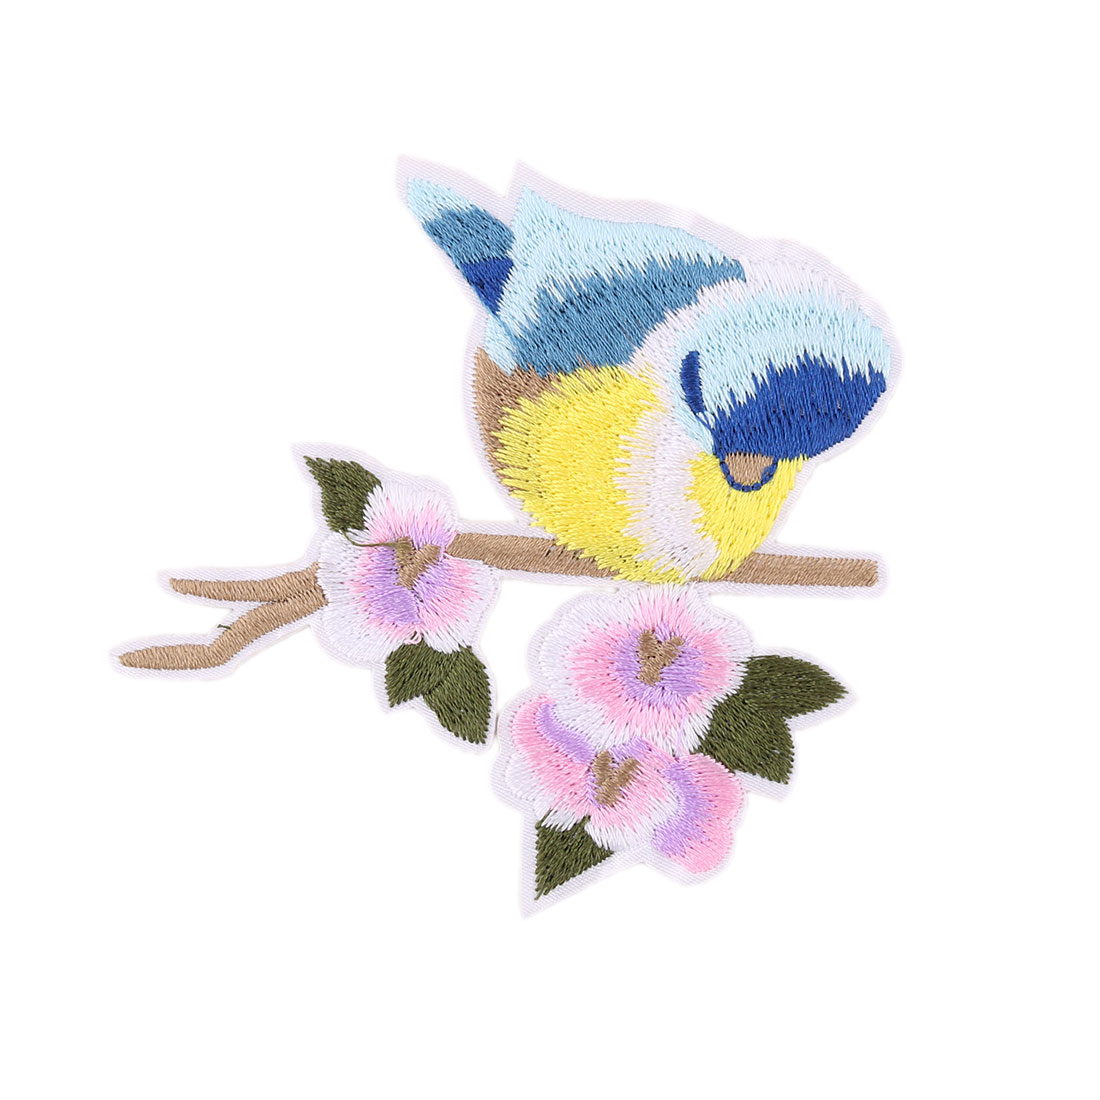 Unique Bargains Household Polyester Bird Pattern Embroidery Handicraft DIY Shoes Lace Applique